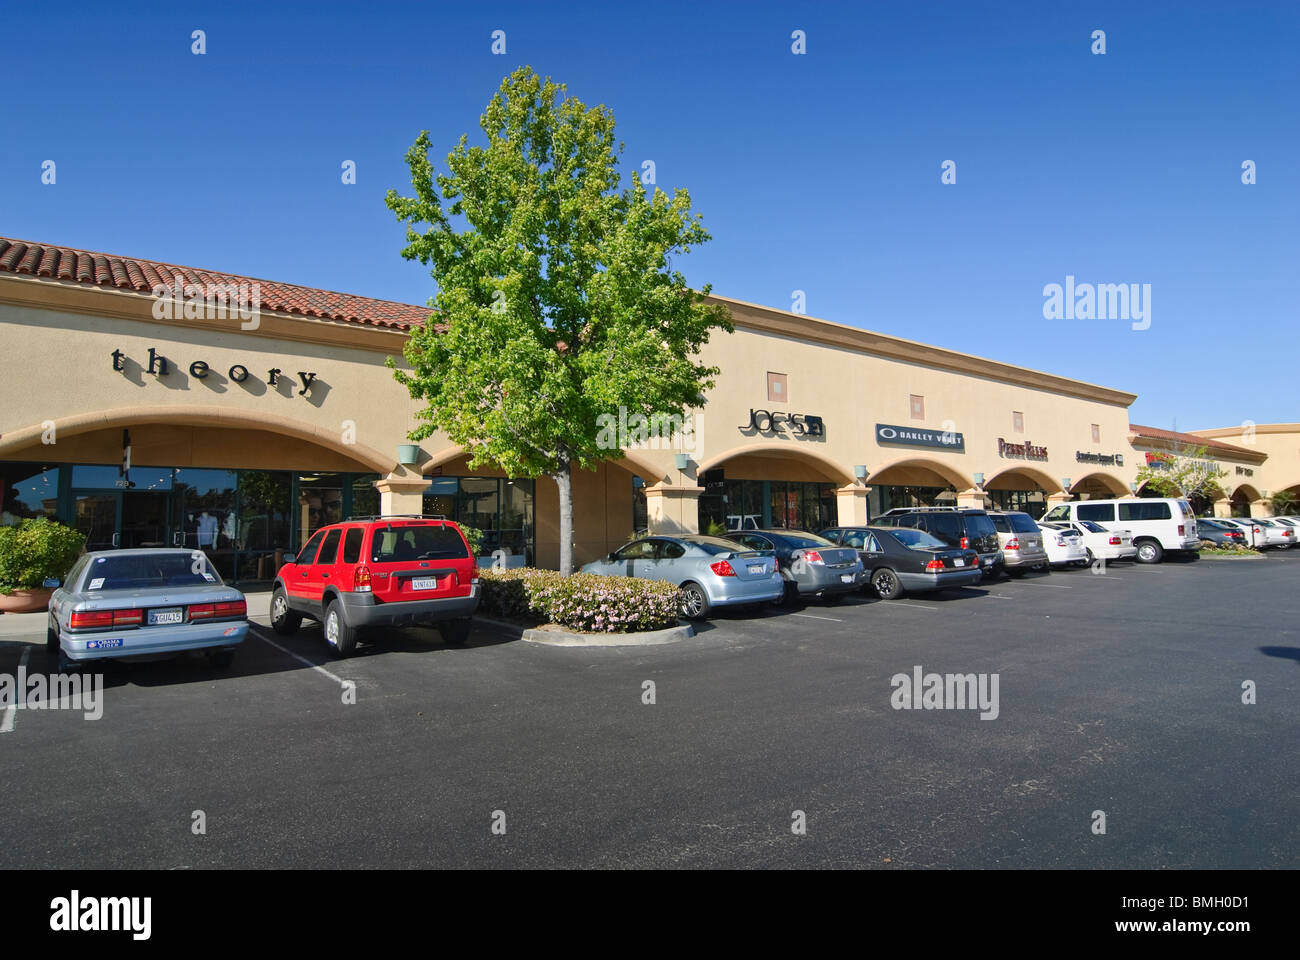 Camarillo Premium Outlets is a shopping center that brings together the finest brands in a unique outdoor environment. - Stock Image